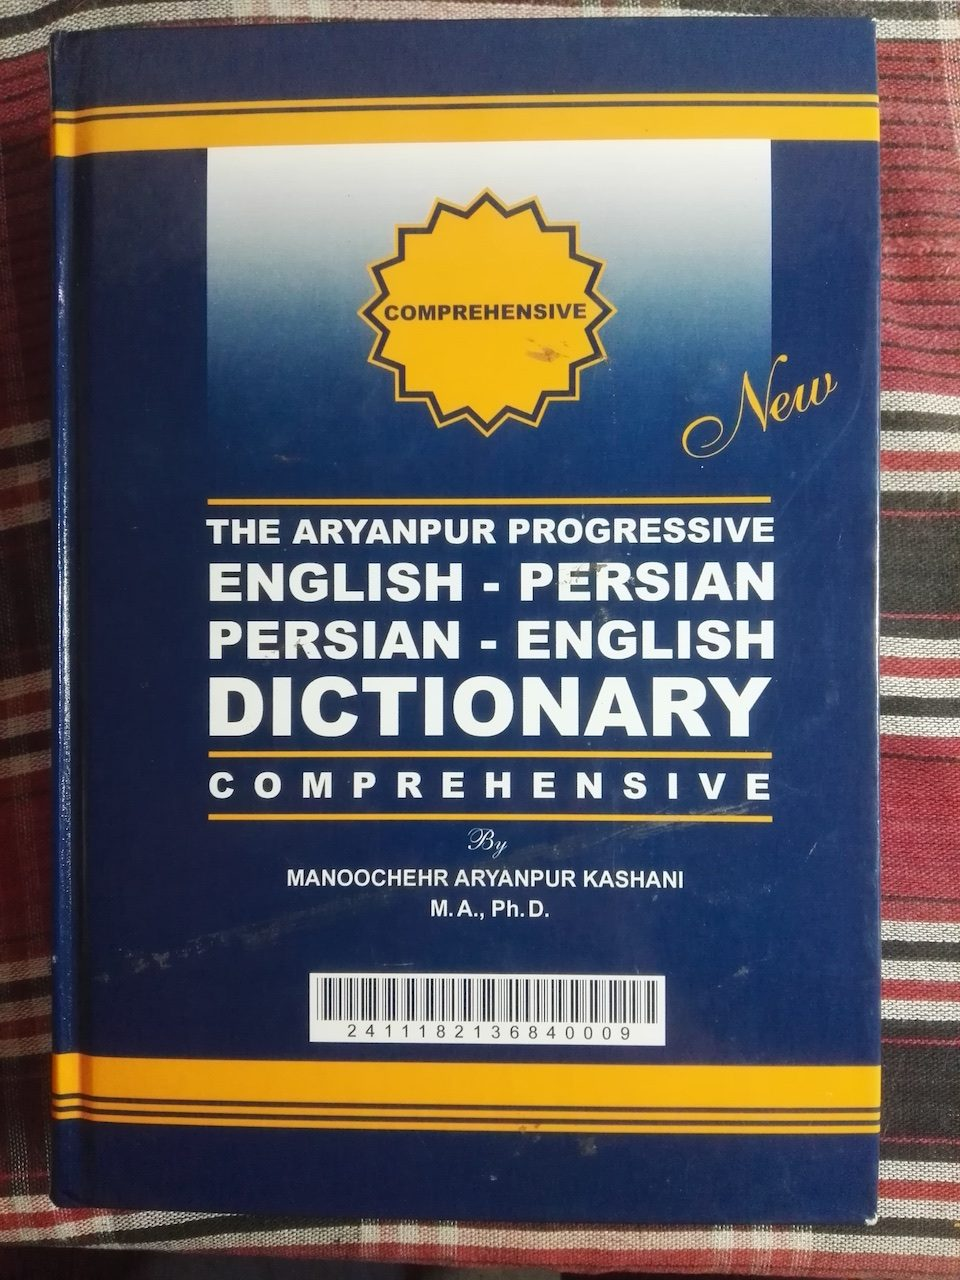 Aryanpur Progressive Dictionary